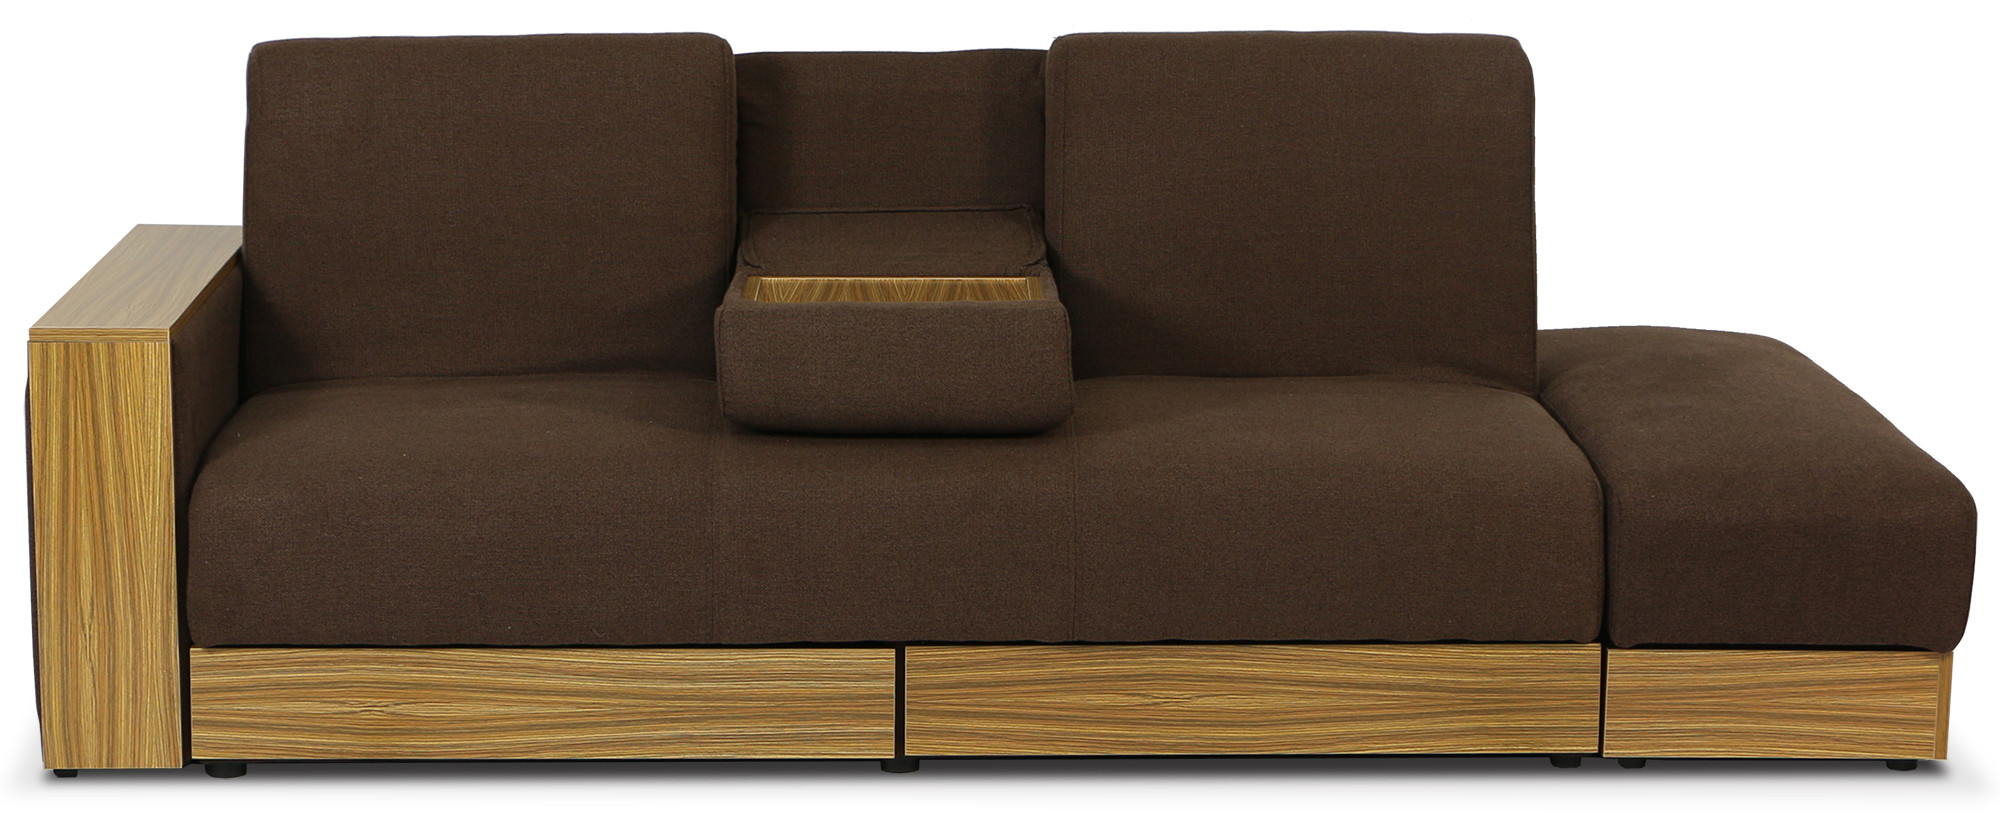 Sarai Storage Sofa Bed Fabric Brown